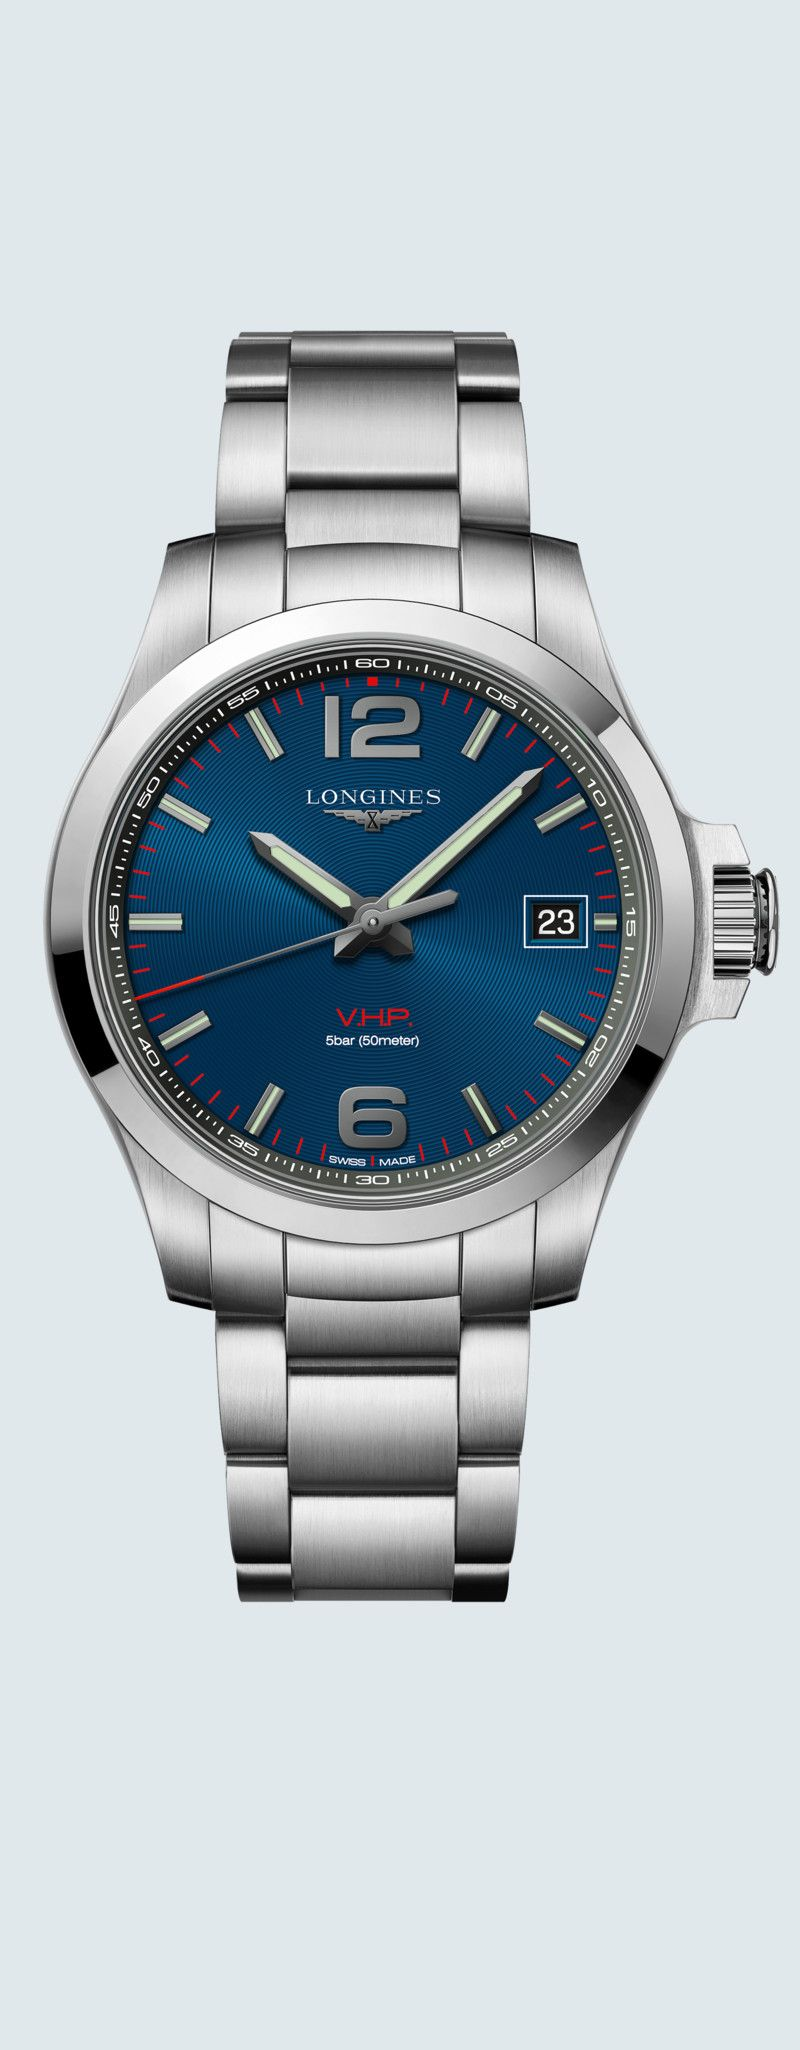 41.00 mm Stainless steel case with Blue carved dial and Stainless steel strap - case zoom view